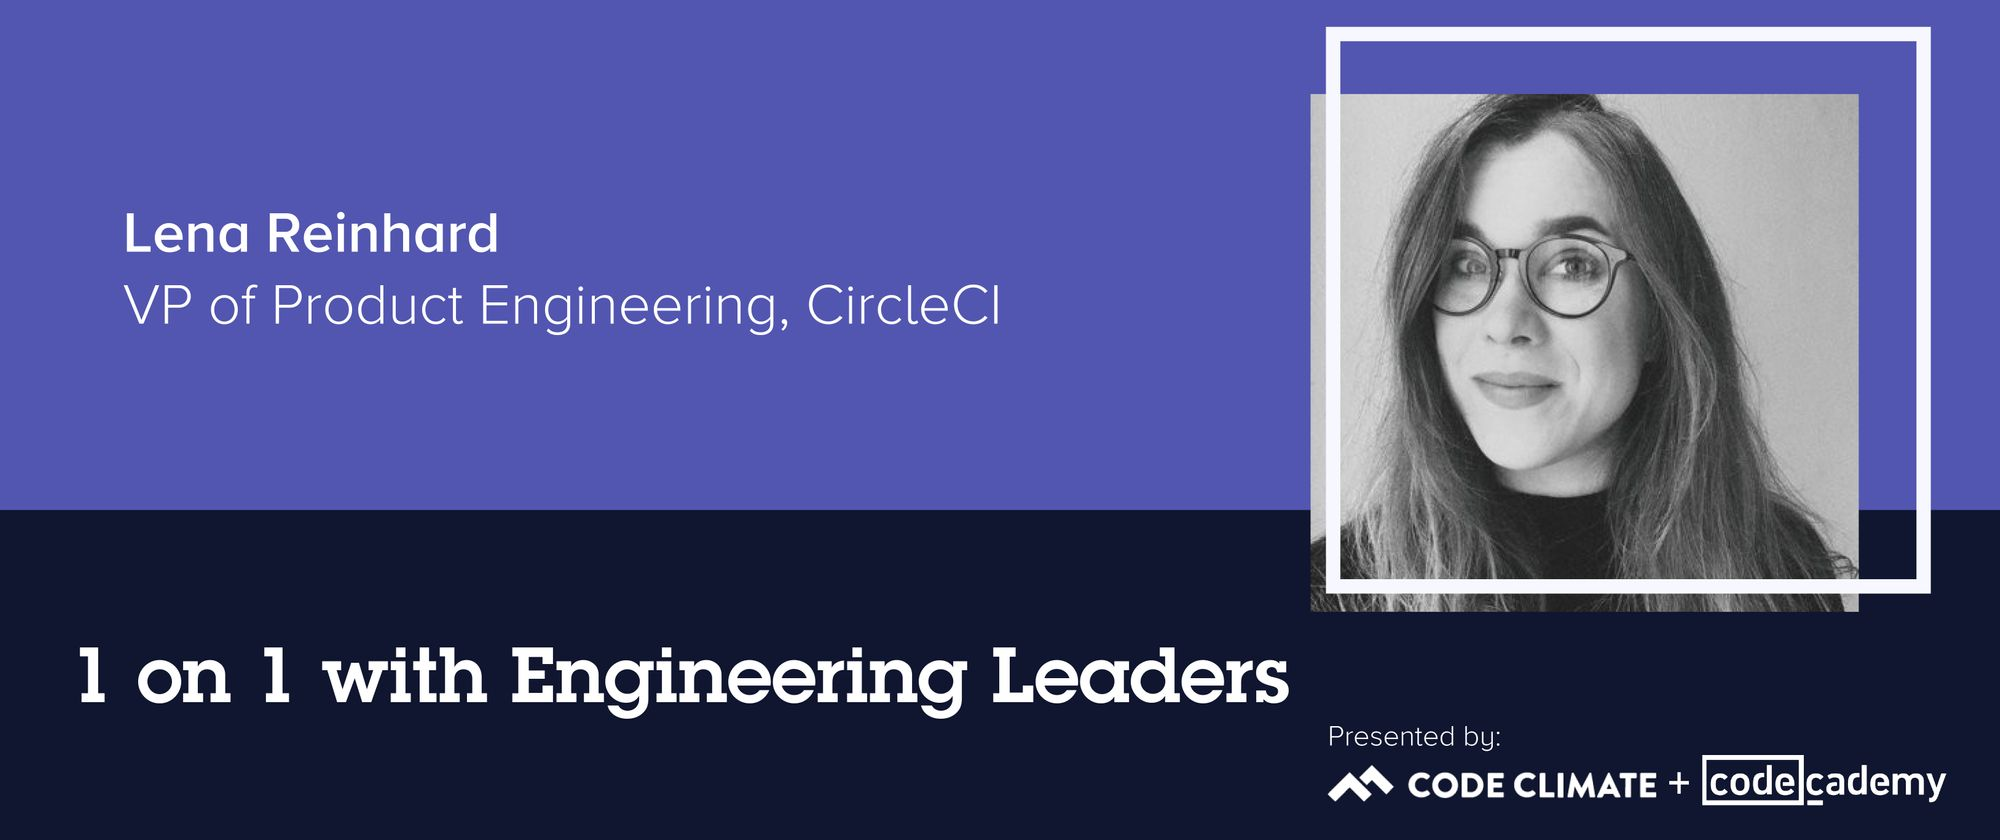 1 on 1 with Engineering Leaders: CircleCI VP of Product Engineering Lena Reinhard